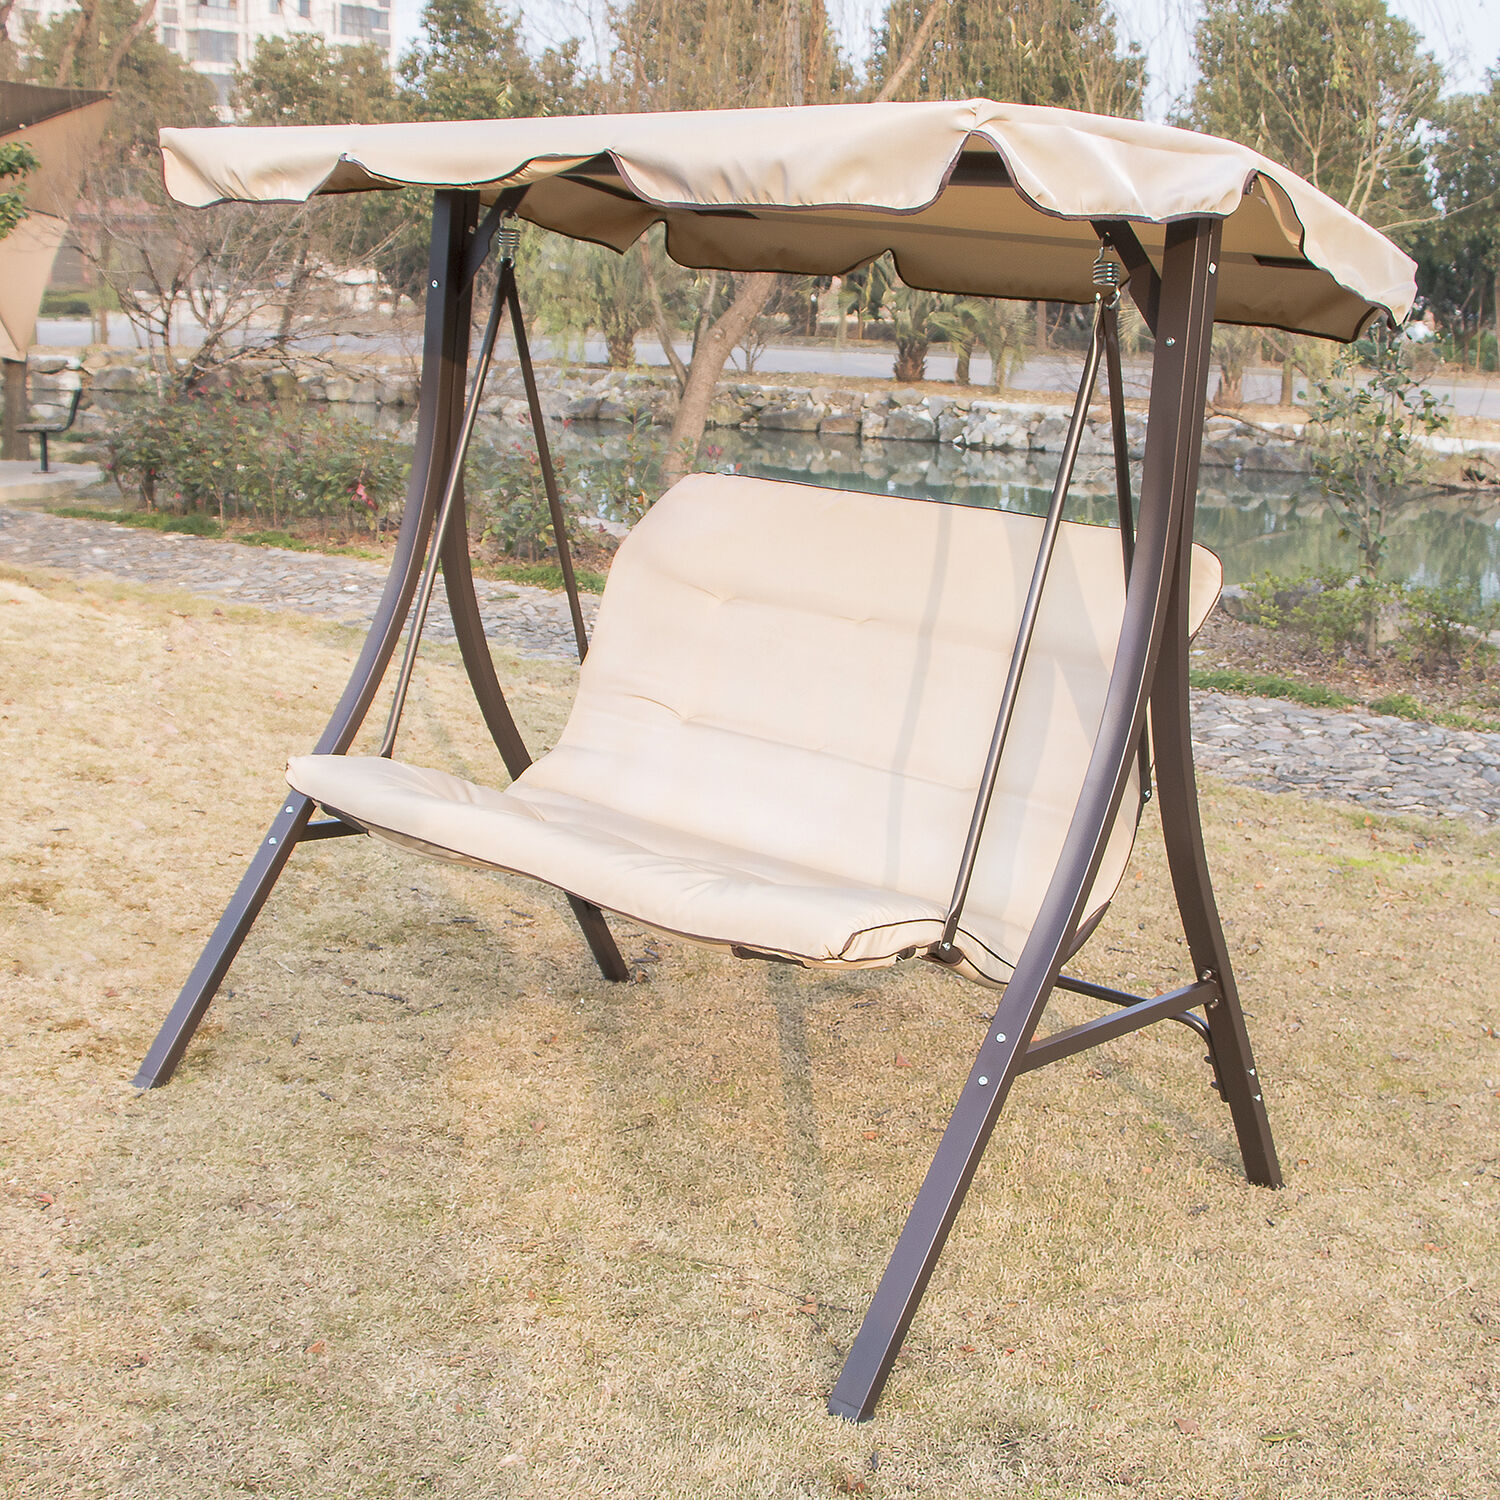 outdoor 2 person canopy swing glider hammock patio backyard porch furniture ebay. Black Bedroom Furniture Sets. Home Design Ideas